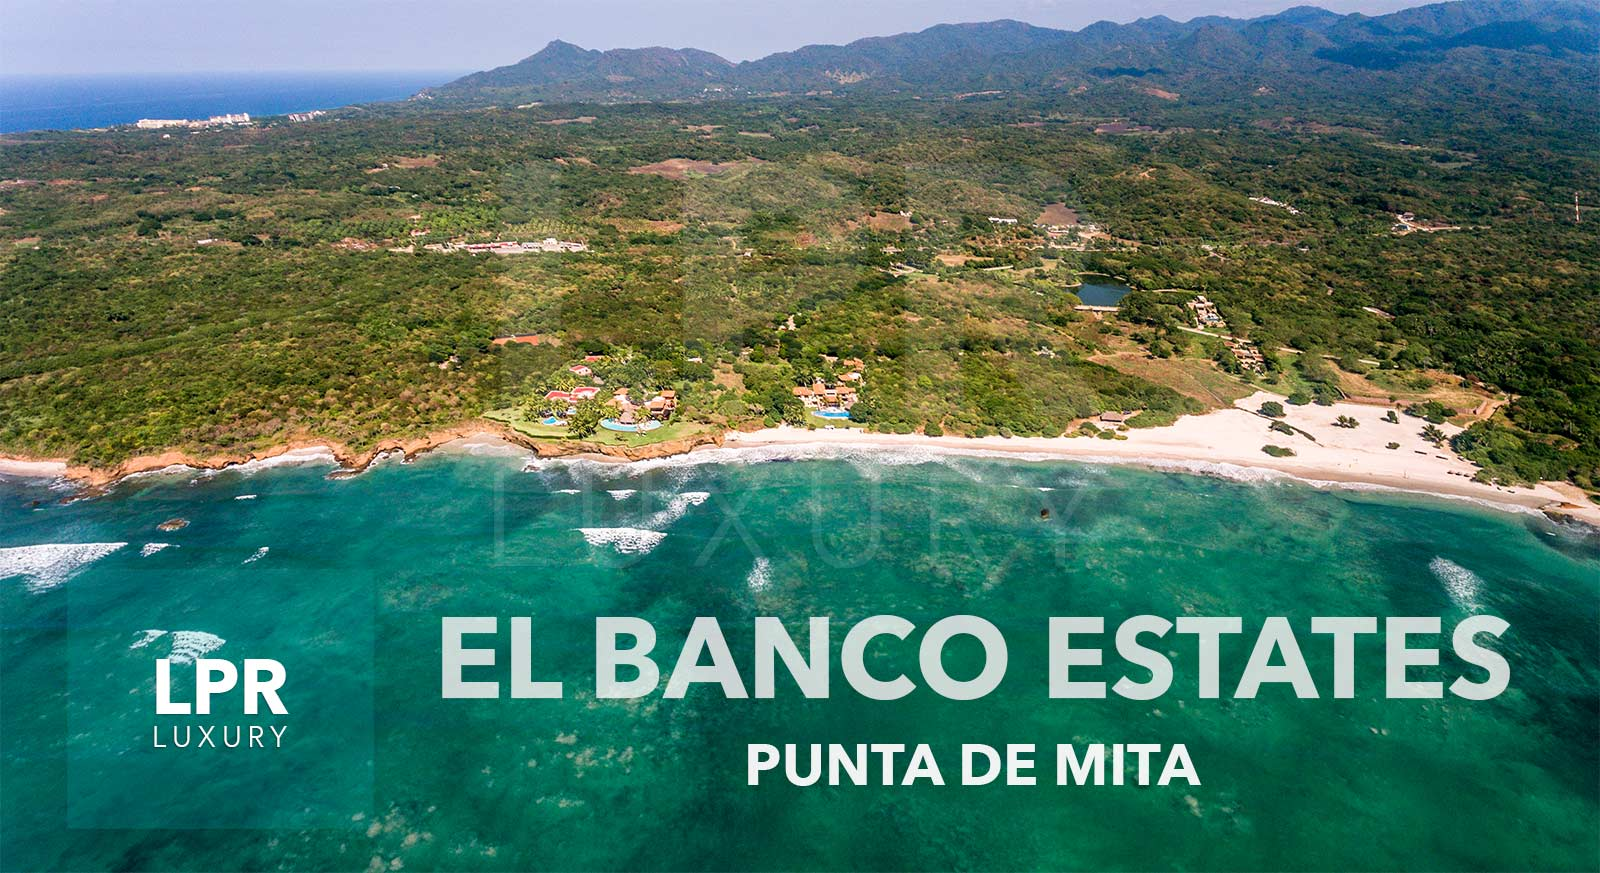 El Banco Estates Ultra Luxury estates at Punta de Mita, Riviera Nayarit, Mexico